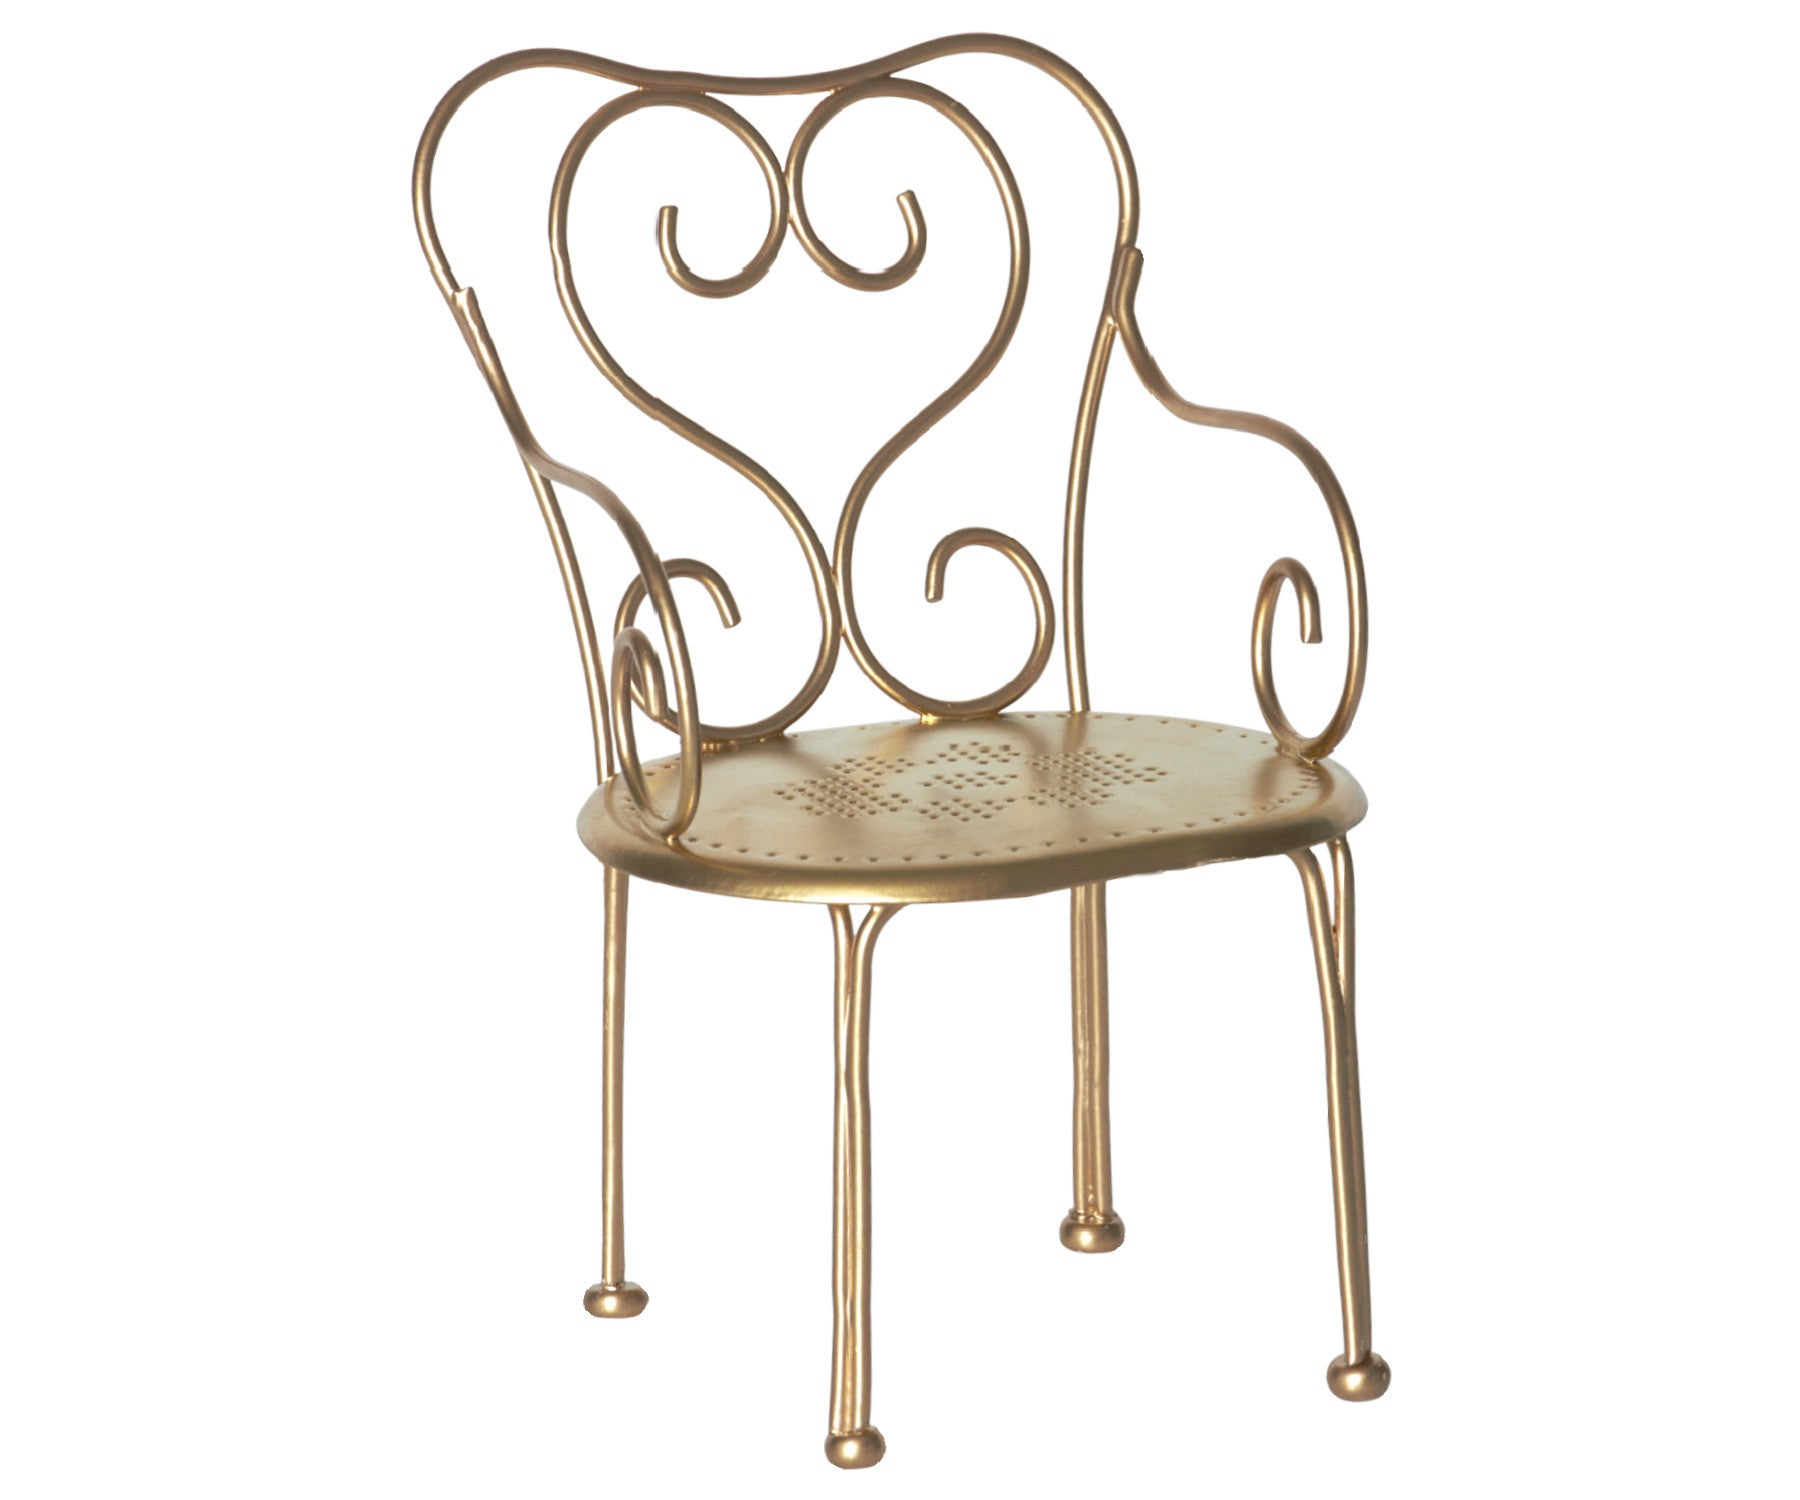 Gold Vintage Chair Mini Maileg USA The Magical World of Maileg